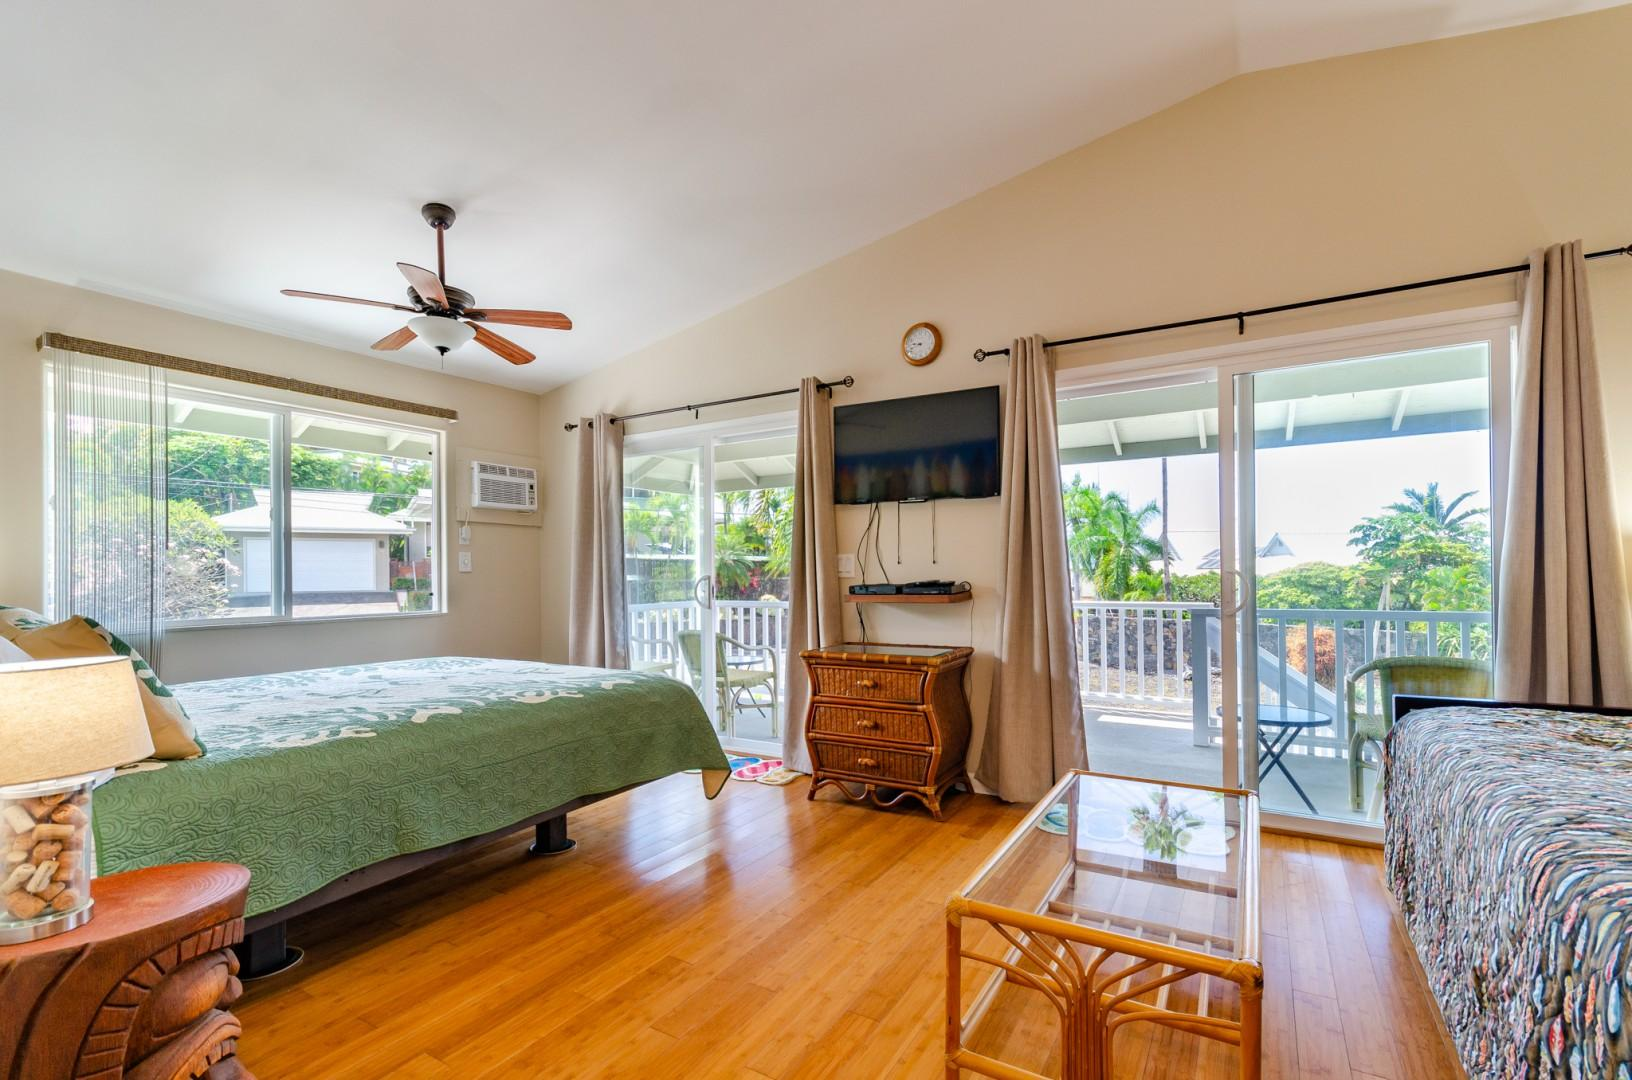 Master bedroom equipped with TV, A/C, and Lanai access